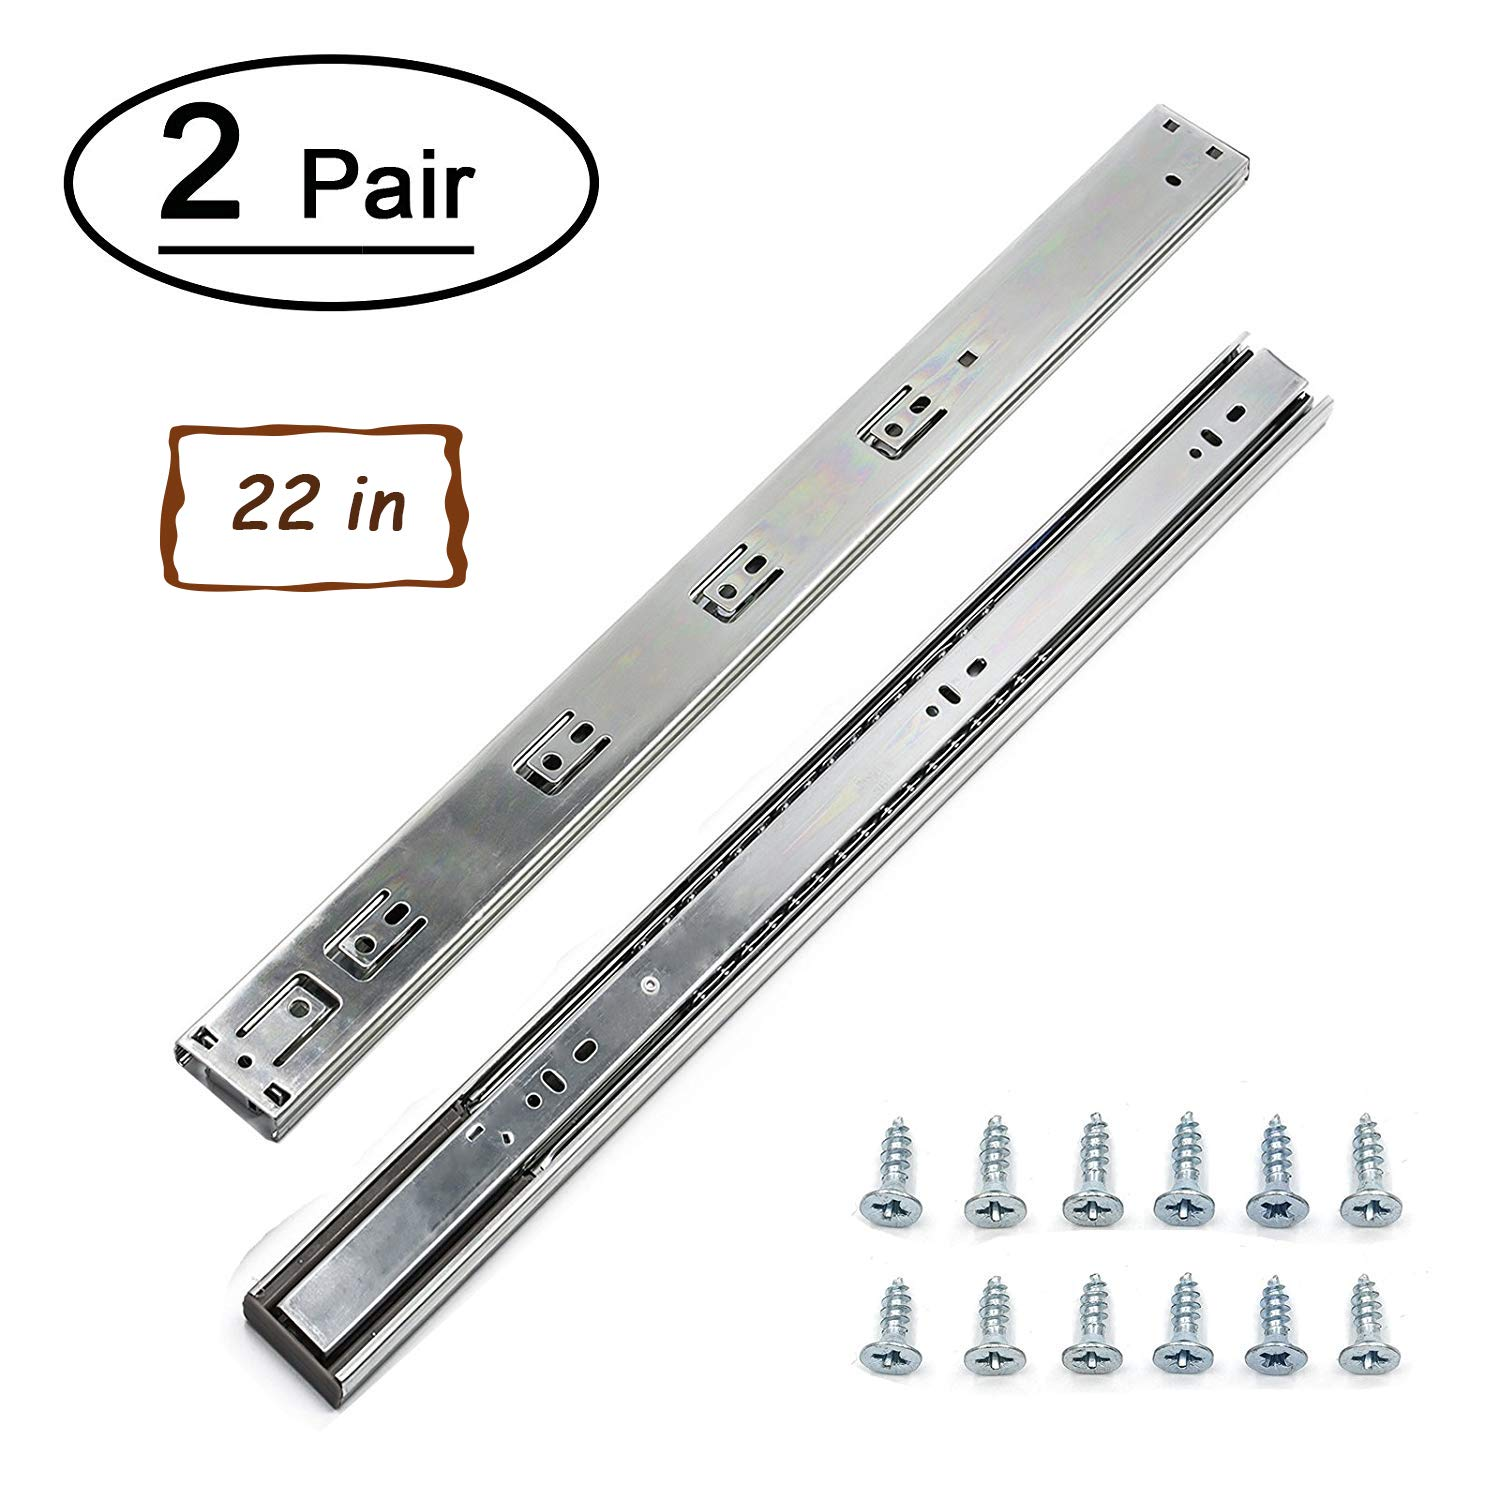 2 Pairs Soft Close Drawer Slides 22 inch Full Extension Ball Bearing Drawer Slides - LONTAN 4502S3-22 Side Mount Drawer Rails 100 LB Capacity Dresser Drawer Runners